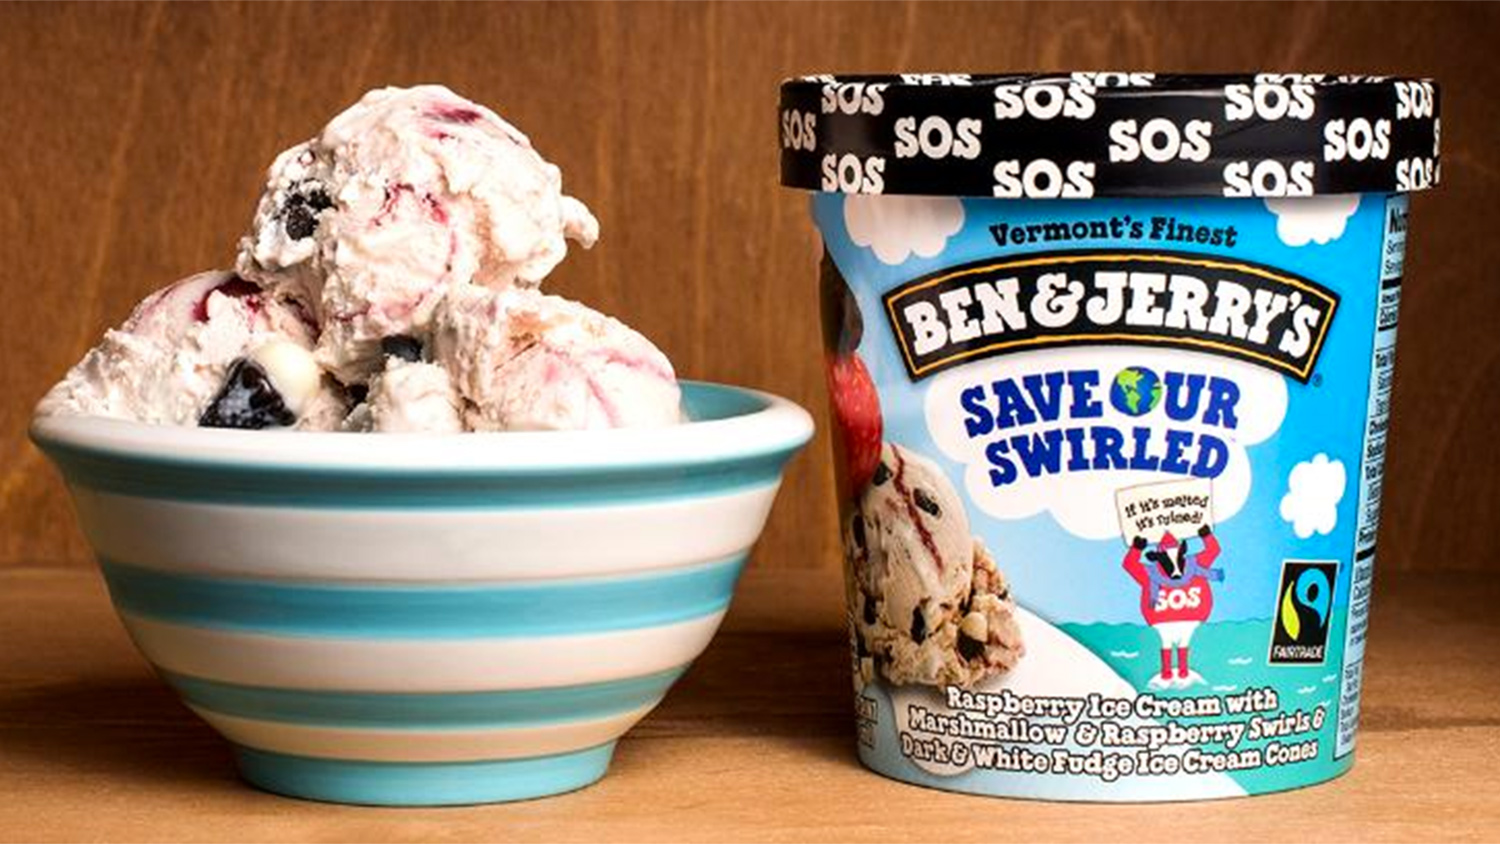 Save Our Swirled ice cream container